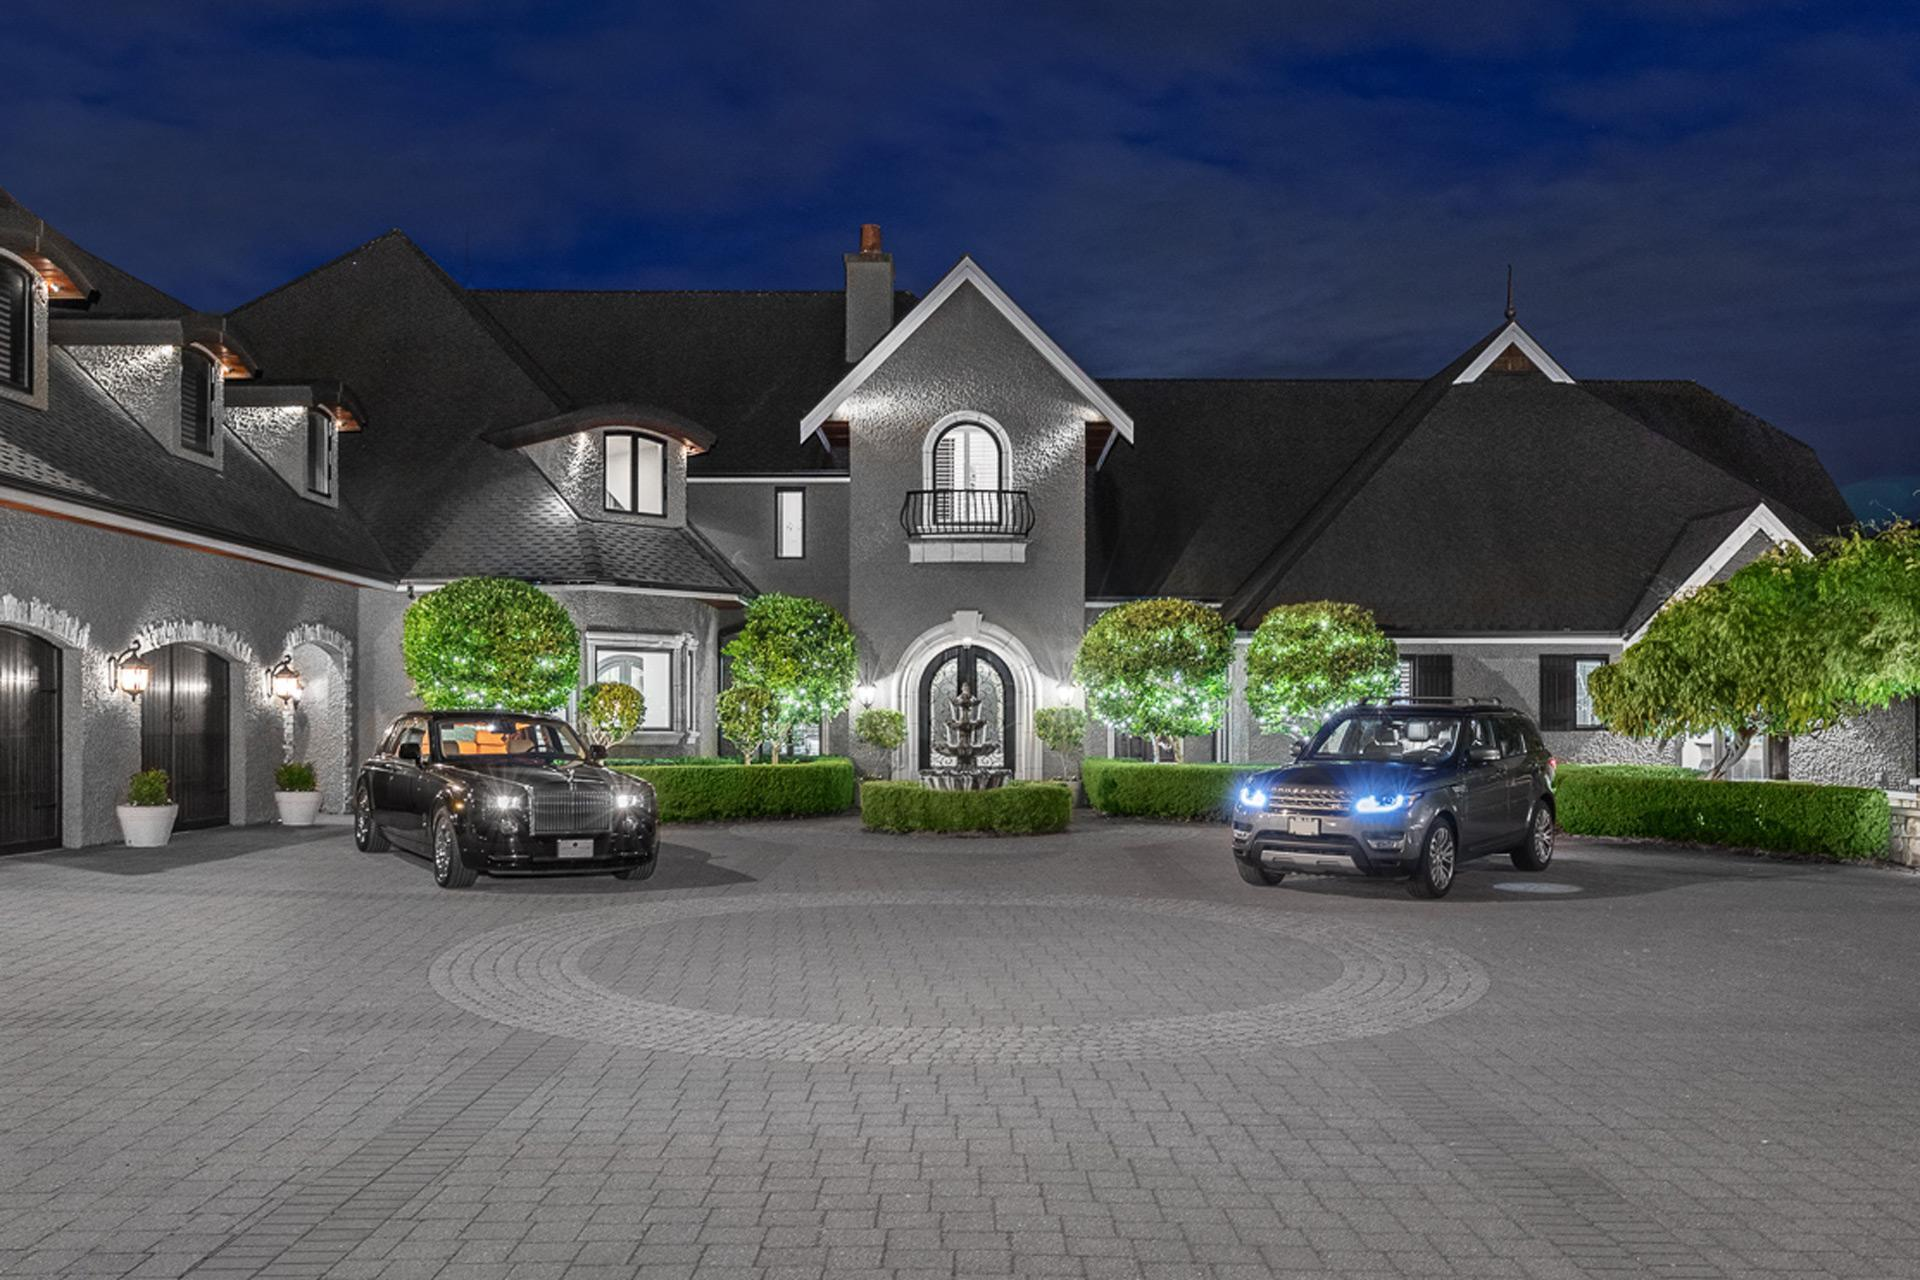 Villa Bellavita -  South Langley,